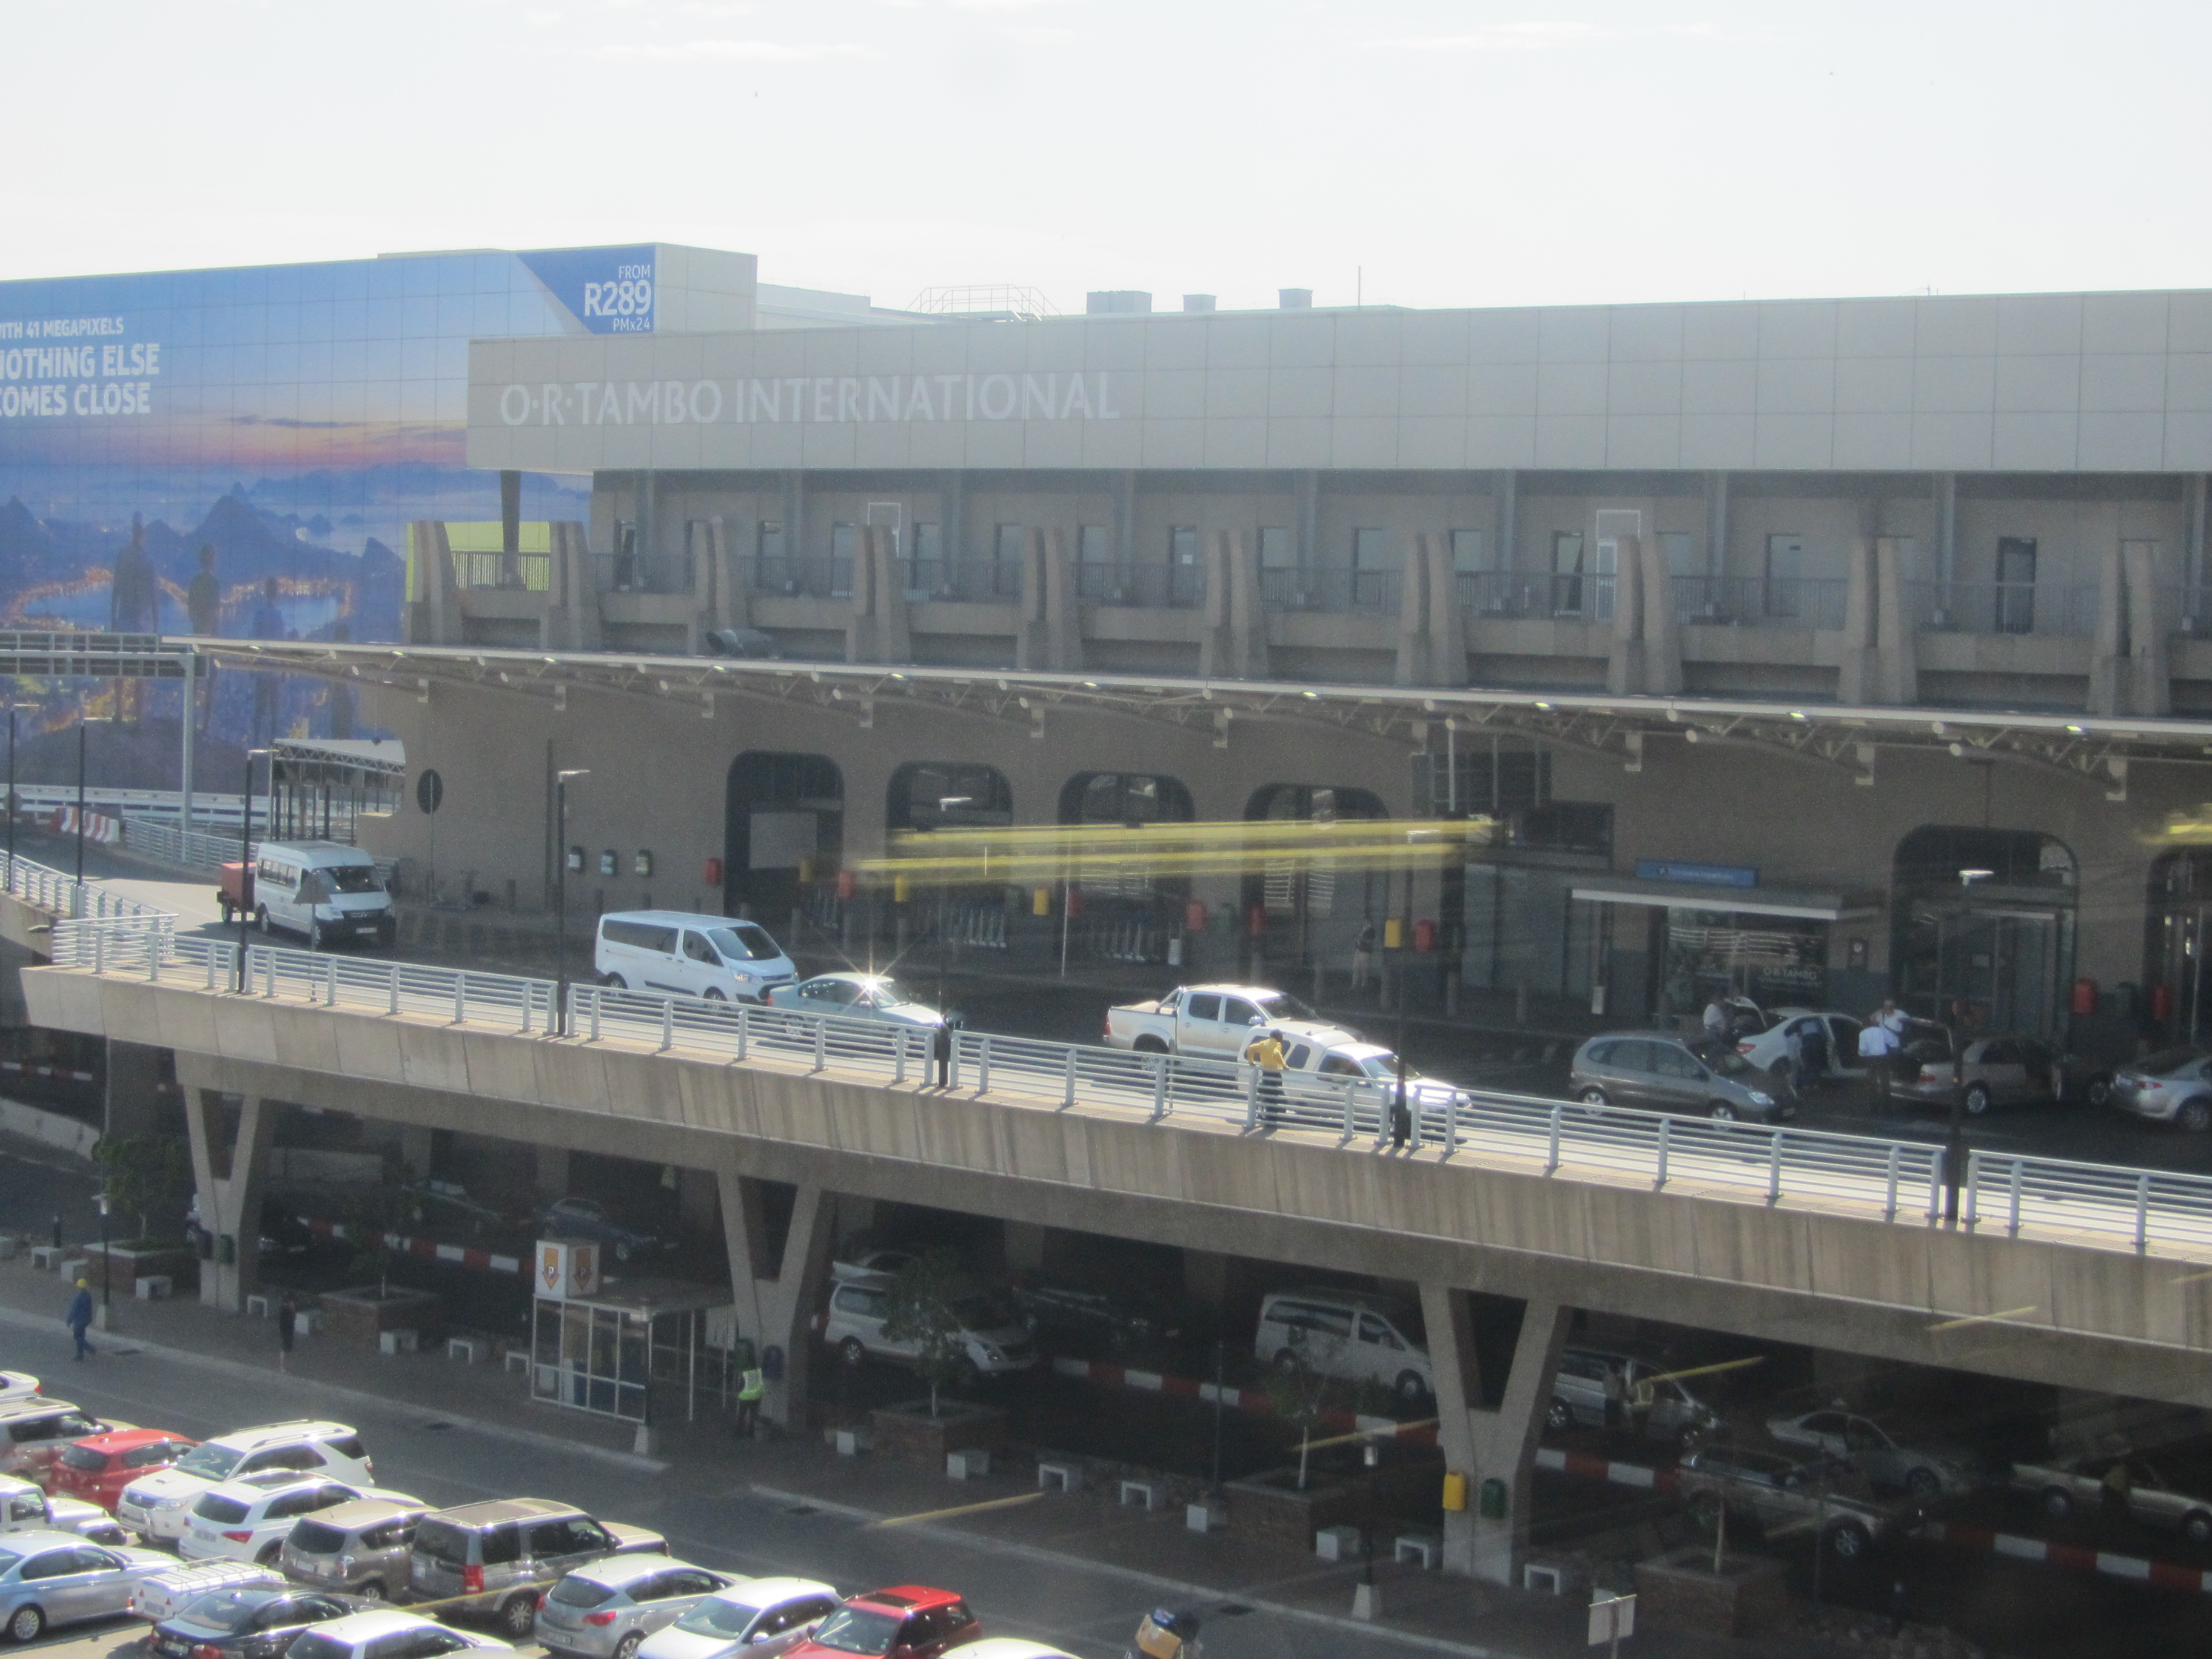 OR Tambo International view from outside